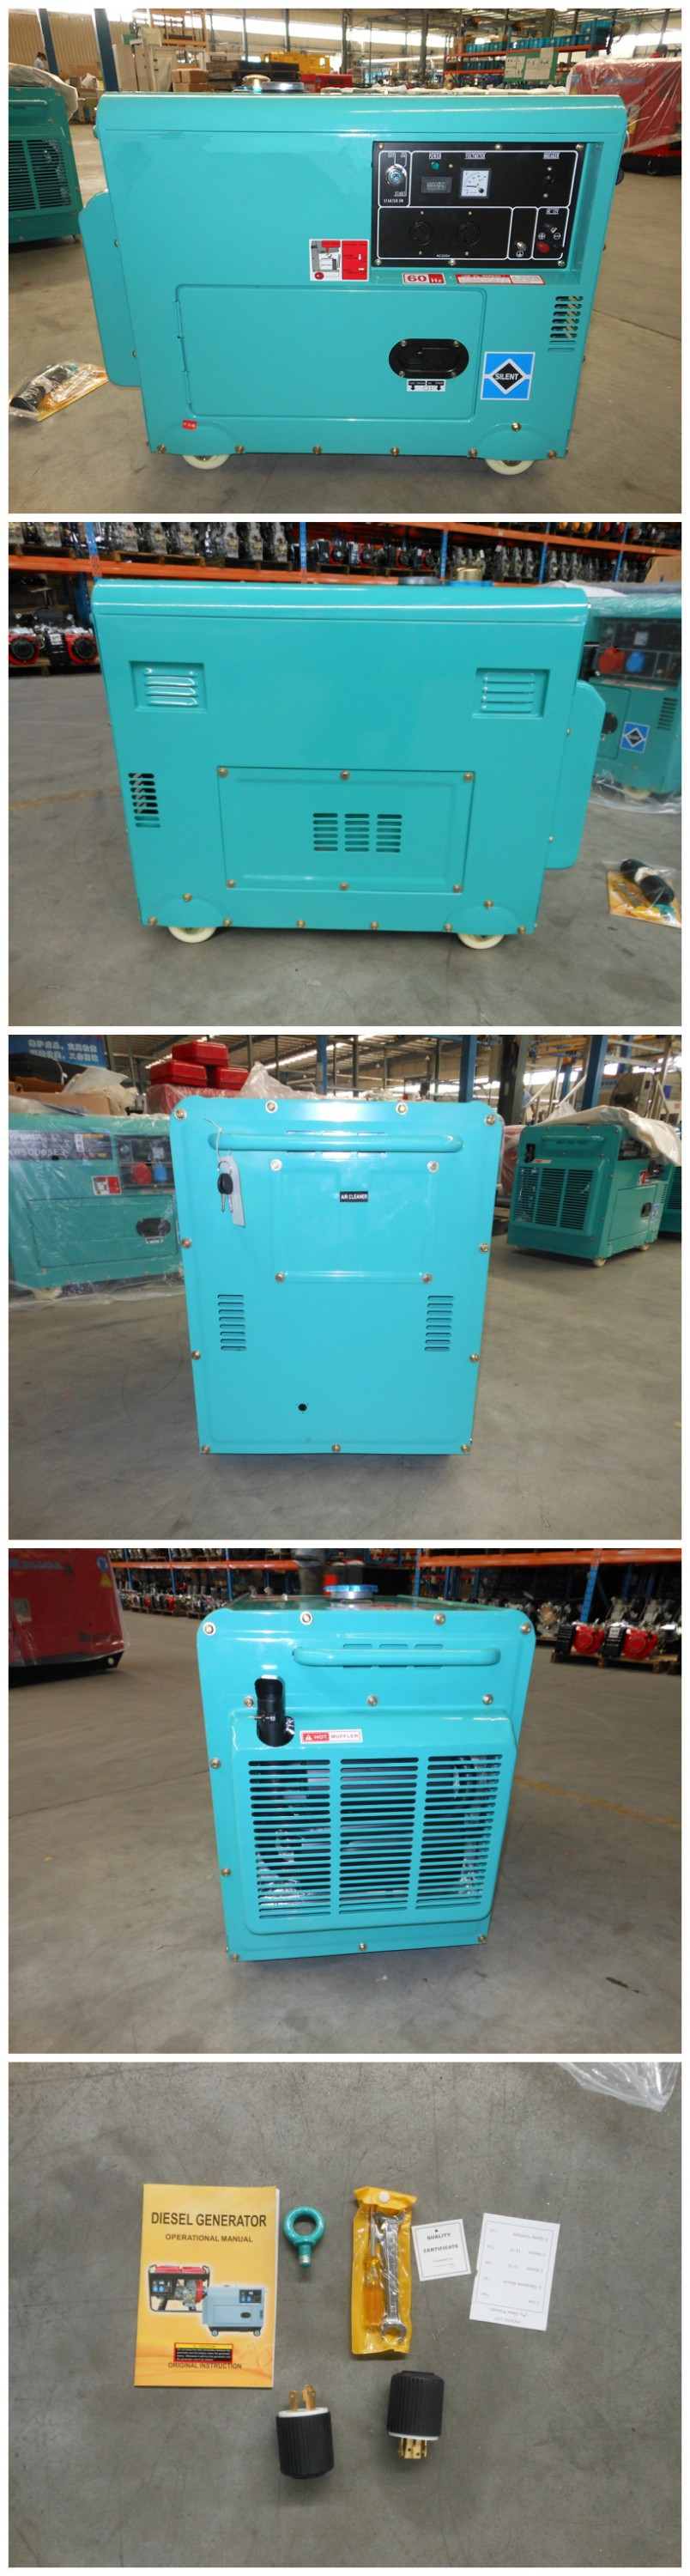 High Quality Silent Diesel Generator With Canopy 5kva With La186